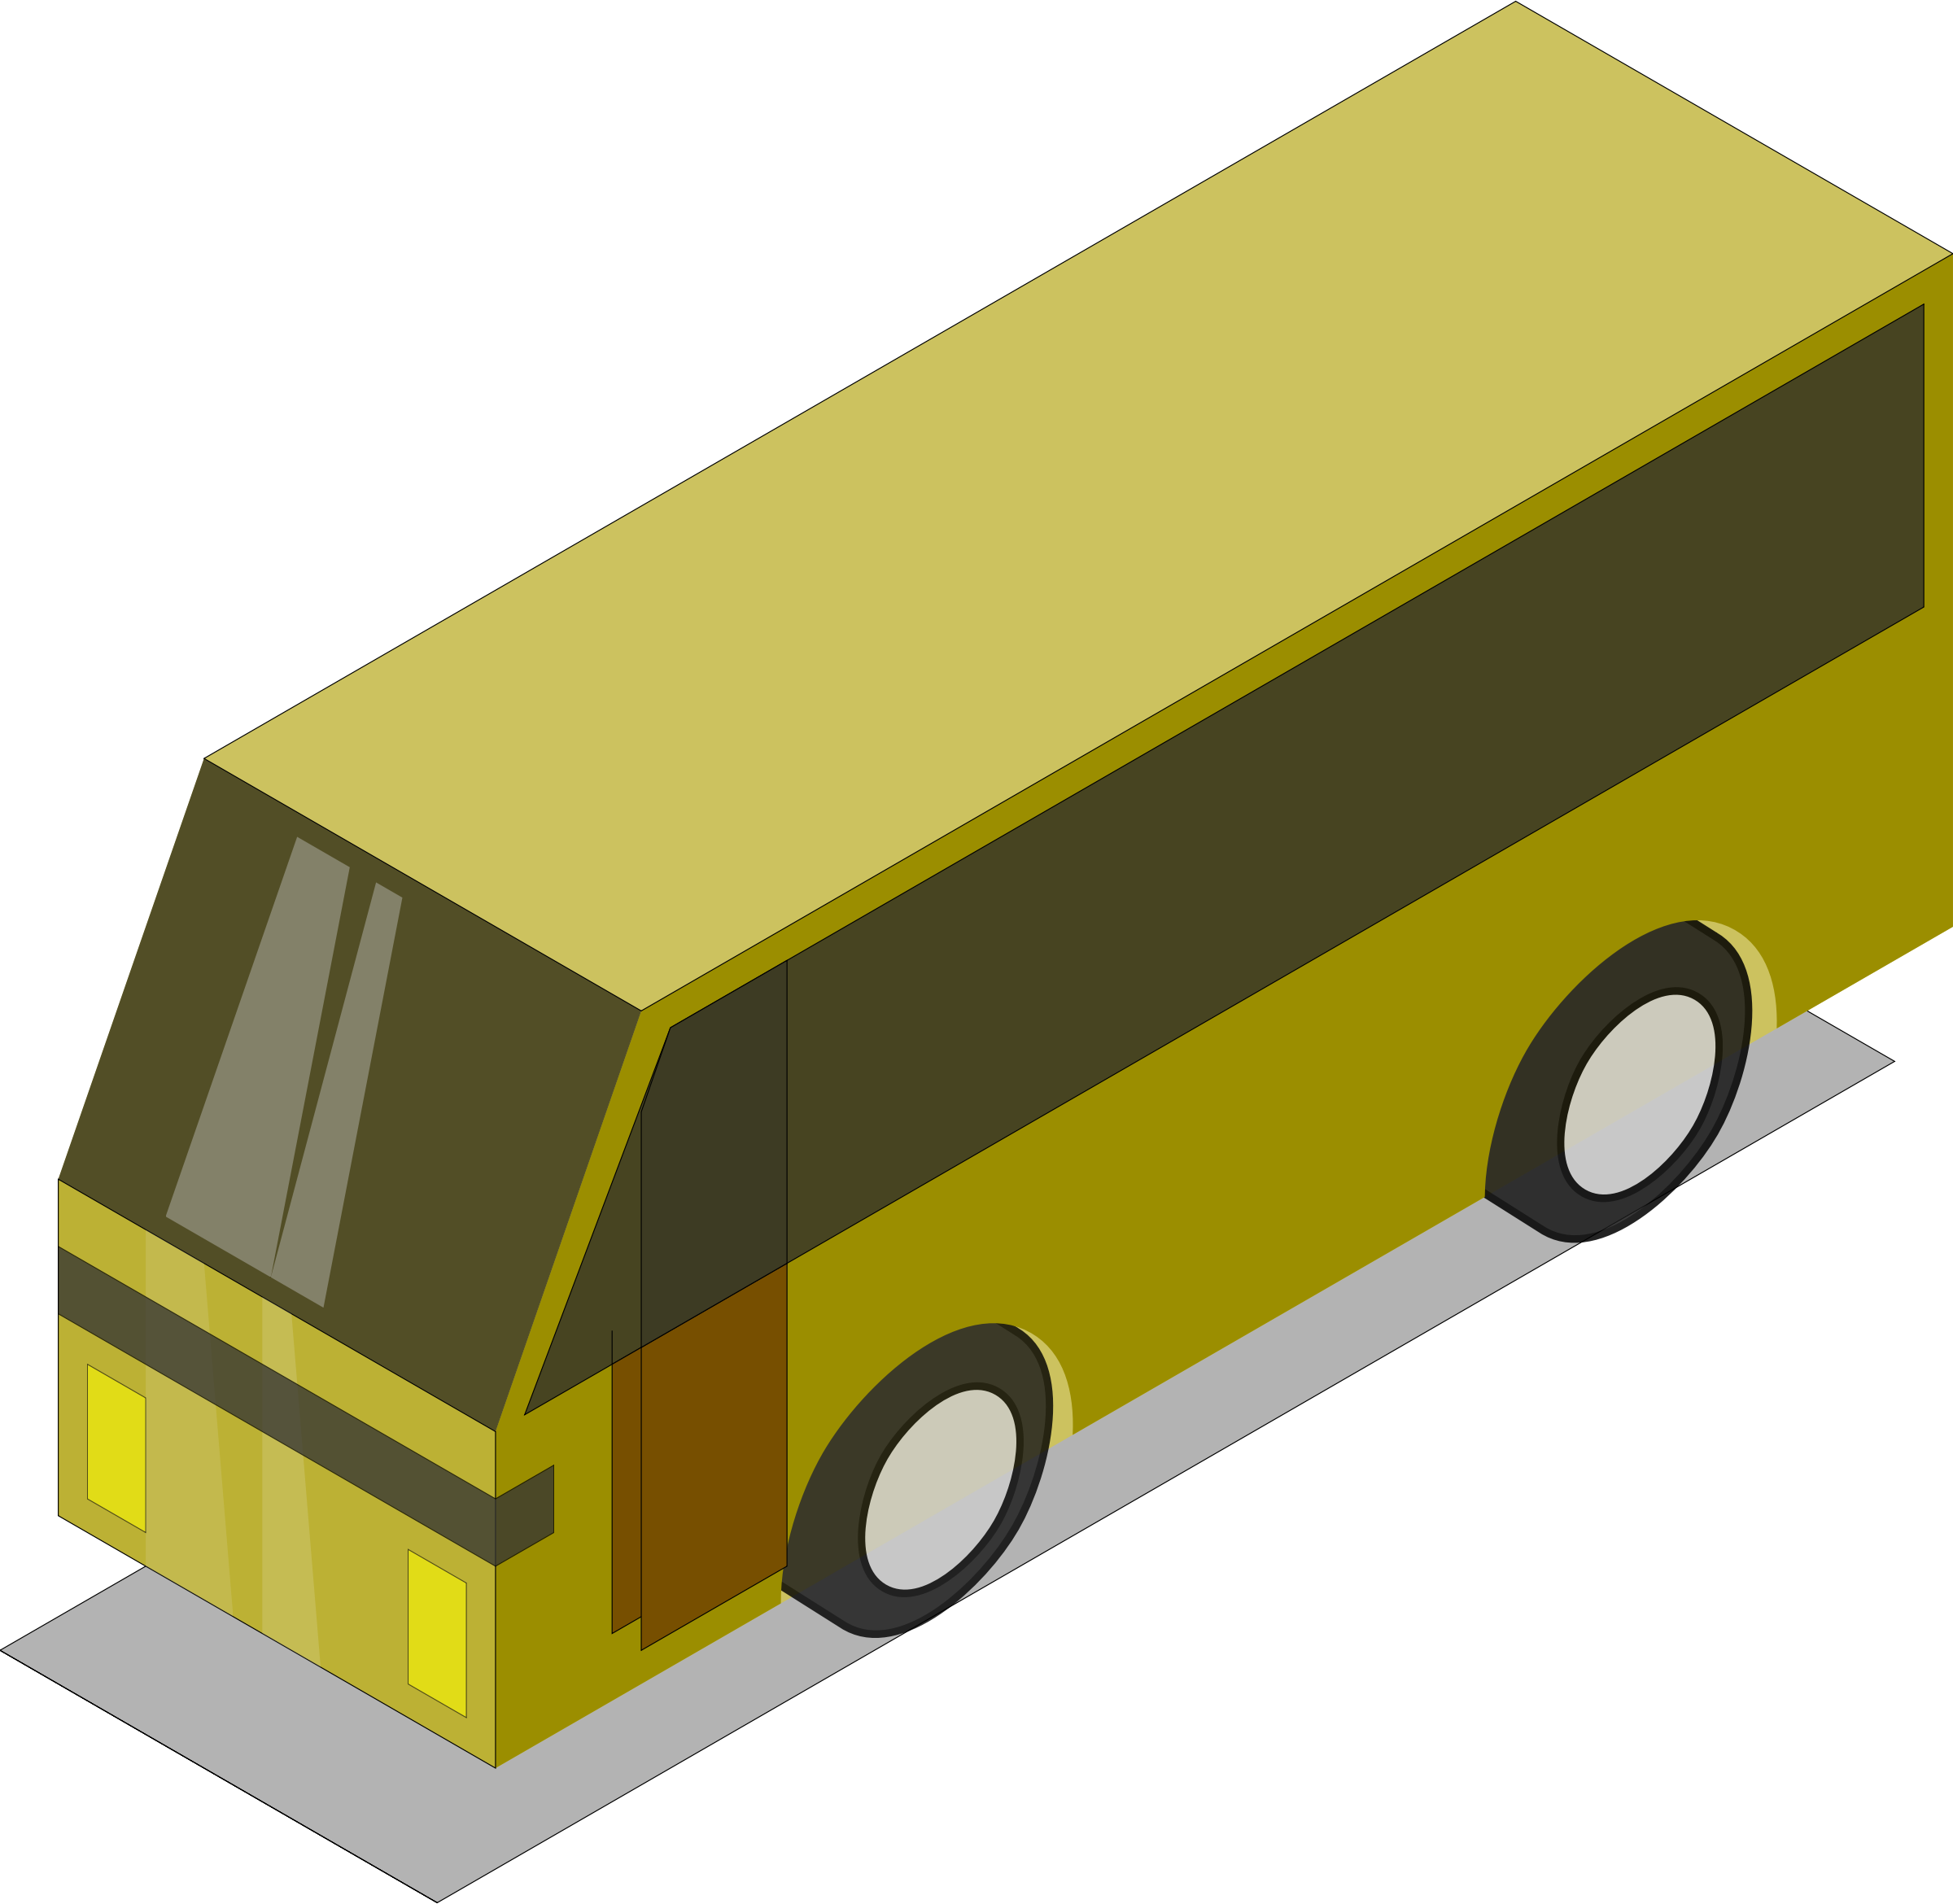 Yellow bus by Astro